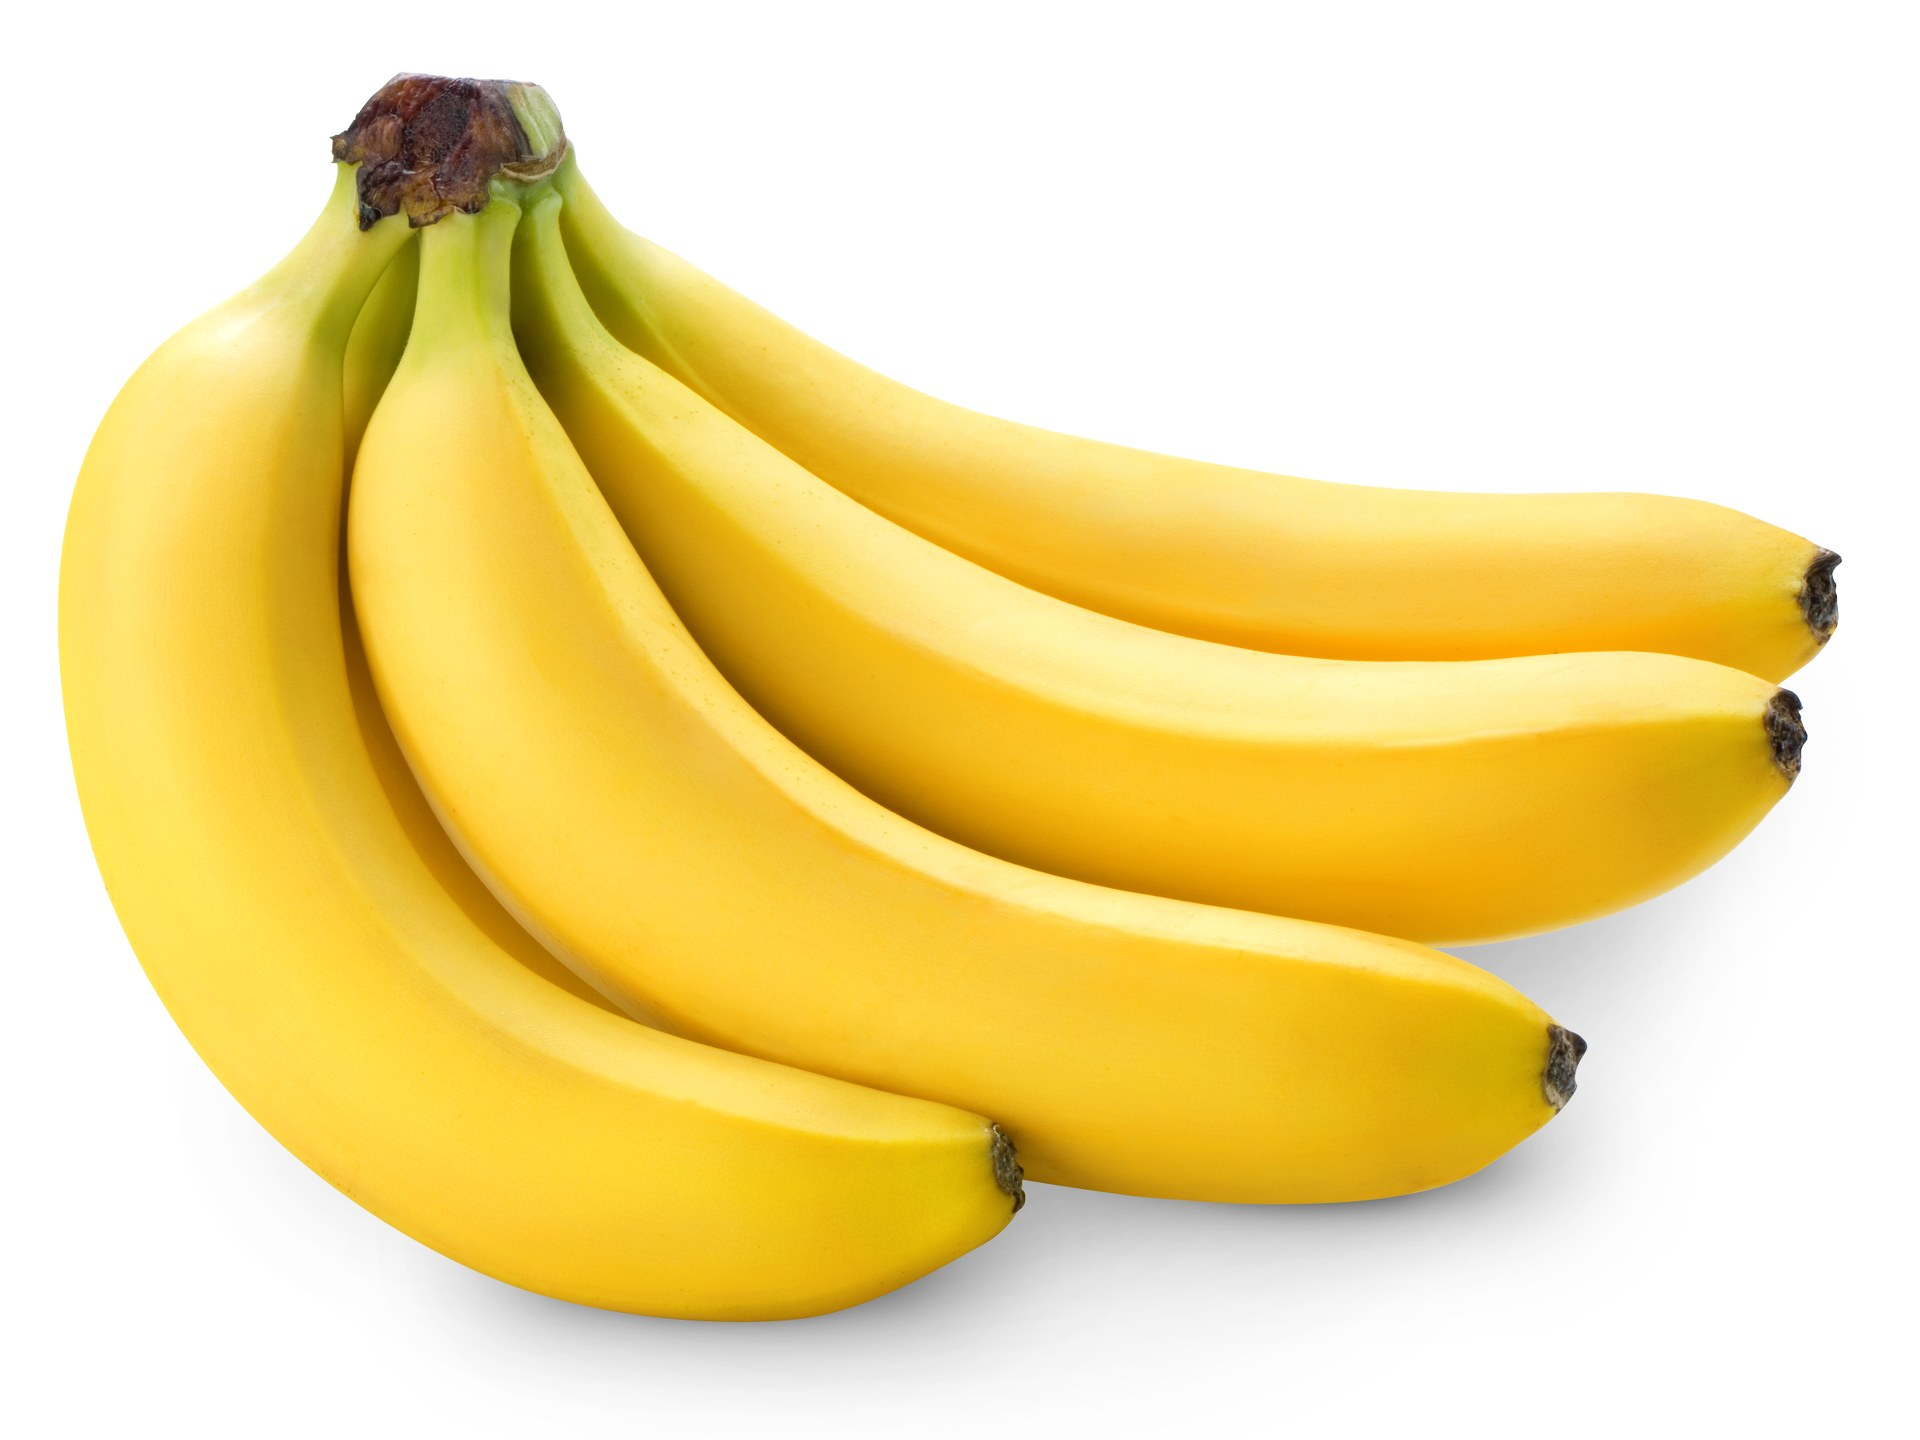 Image result for banane